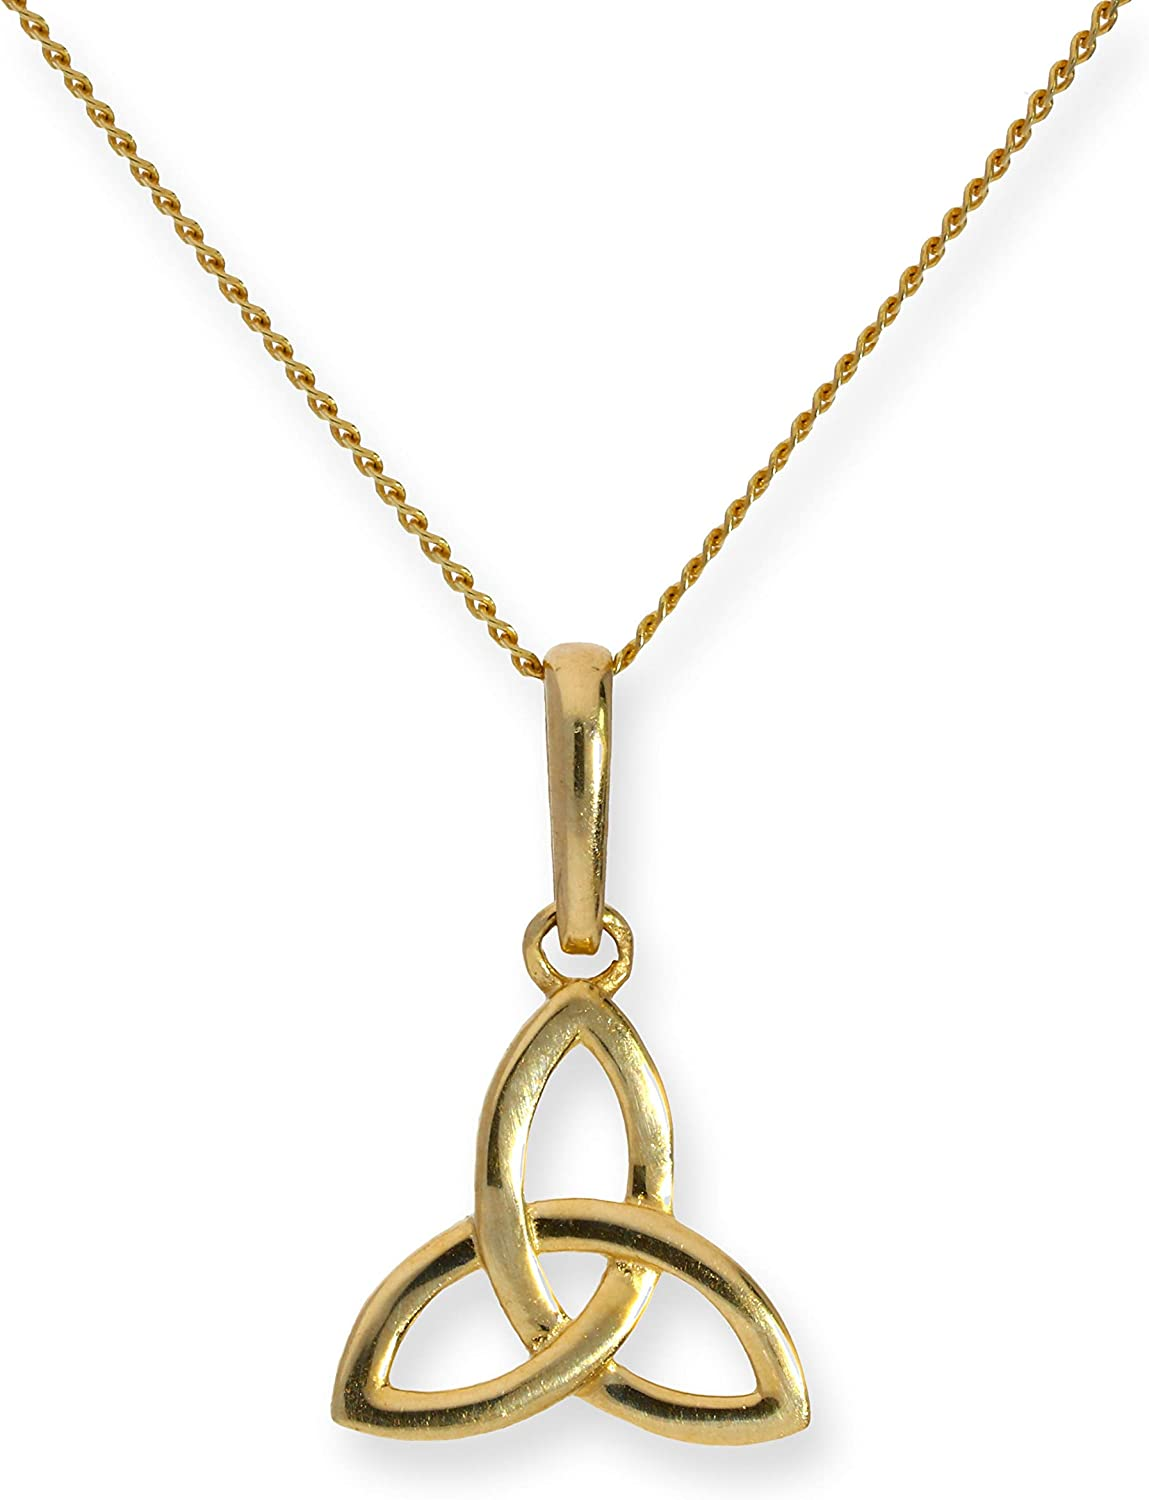 Real 375 9ct Gold /& Clear CZ Crystal Cut Out Heart Necklace Necklace